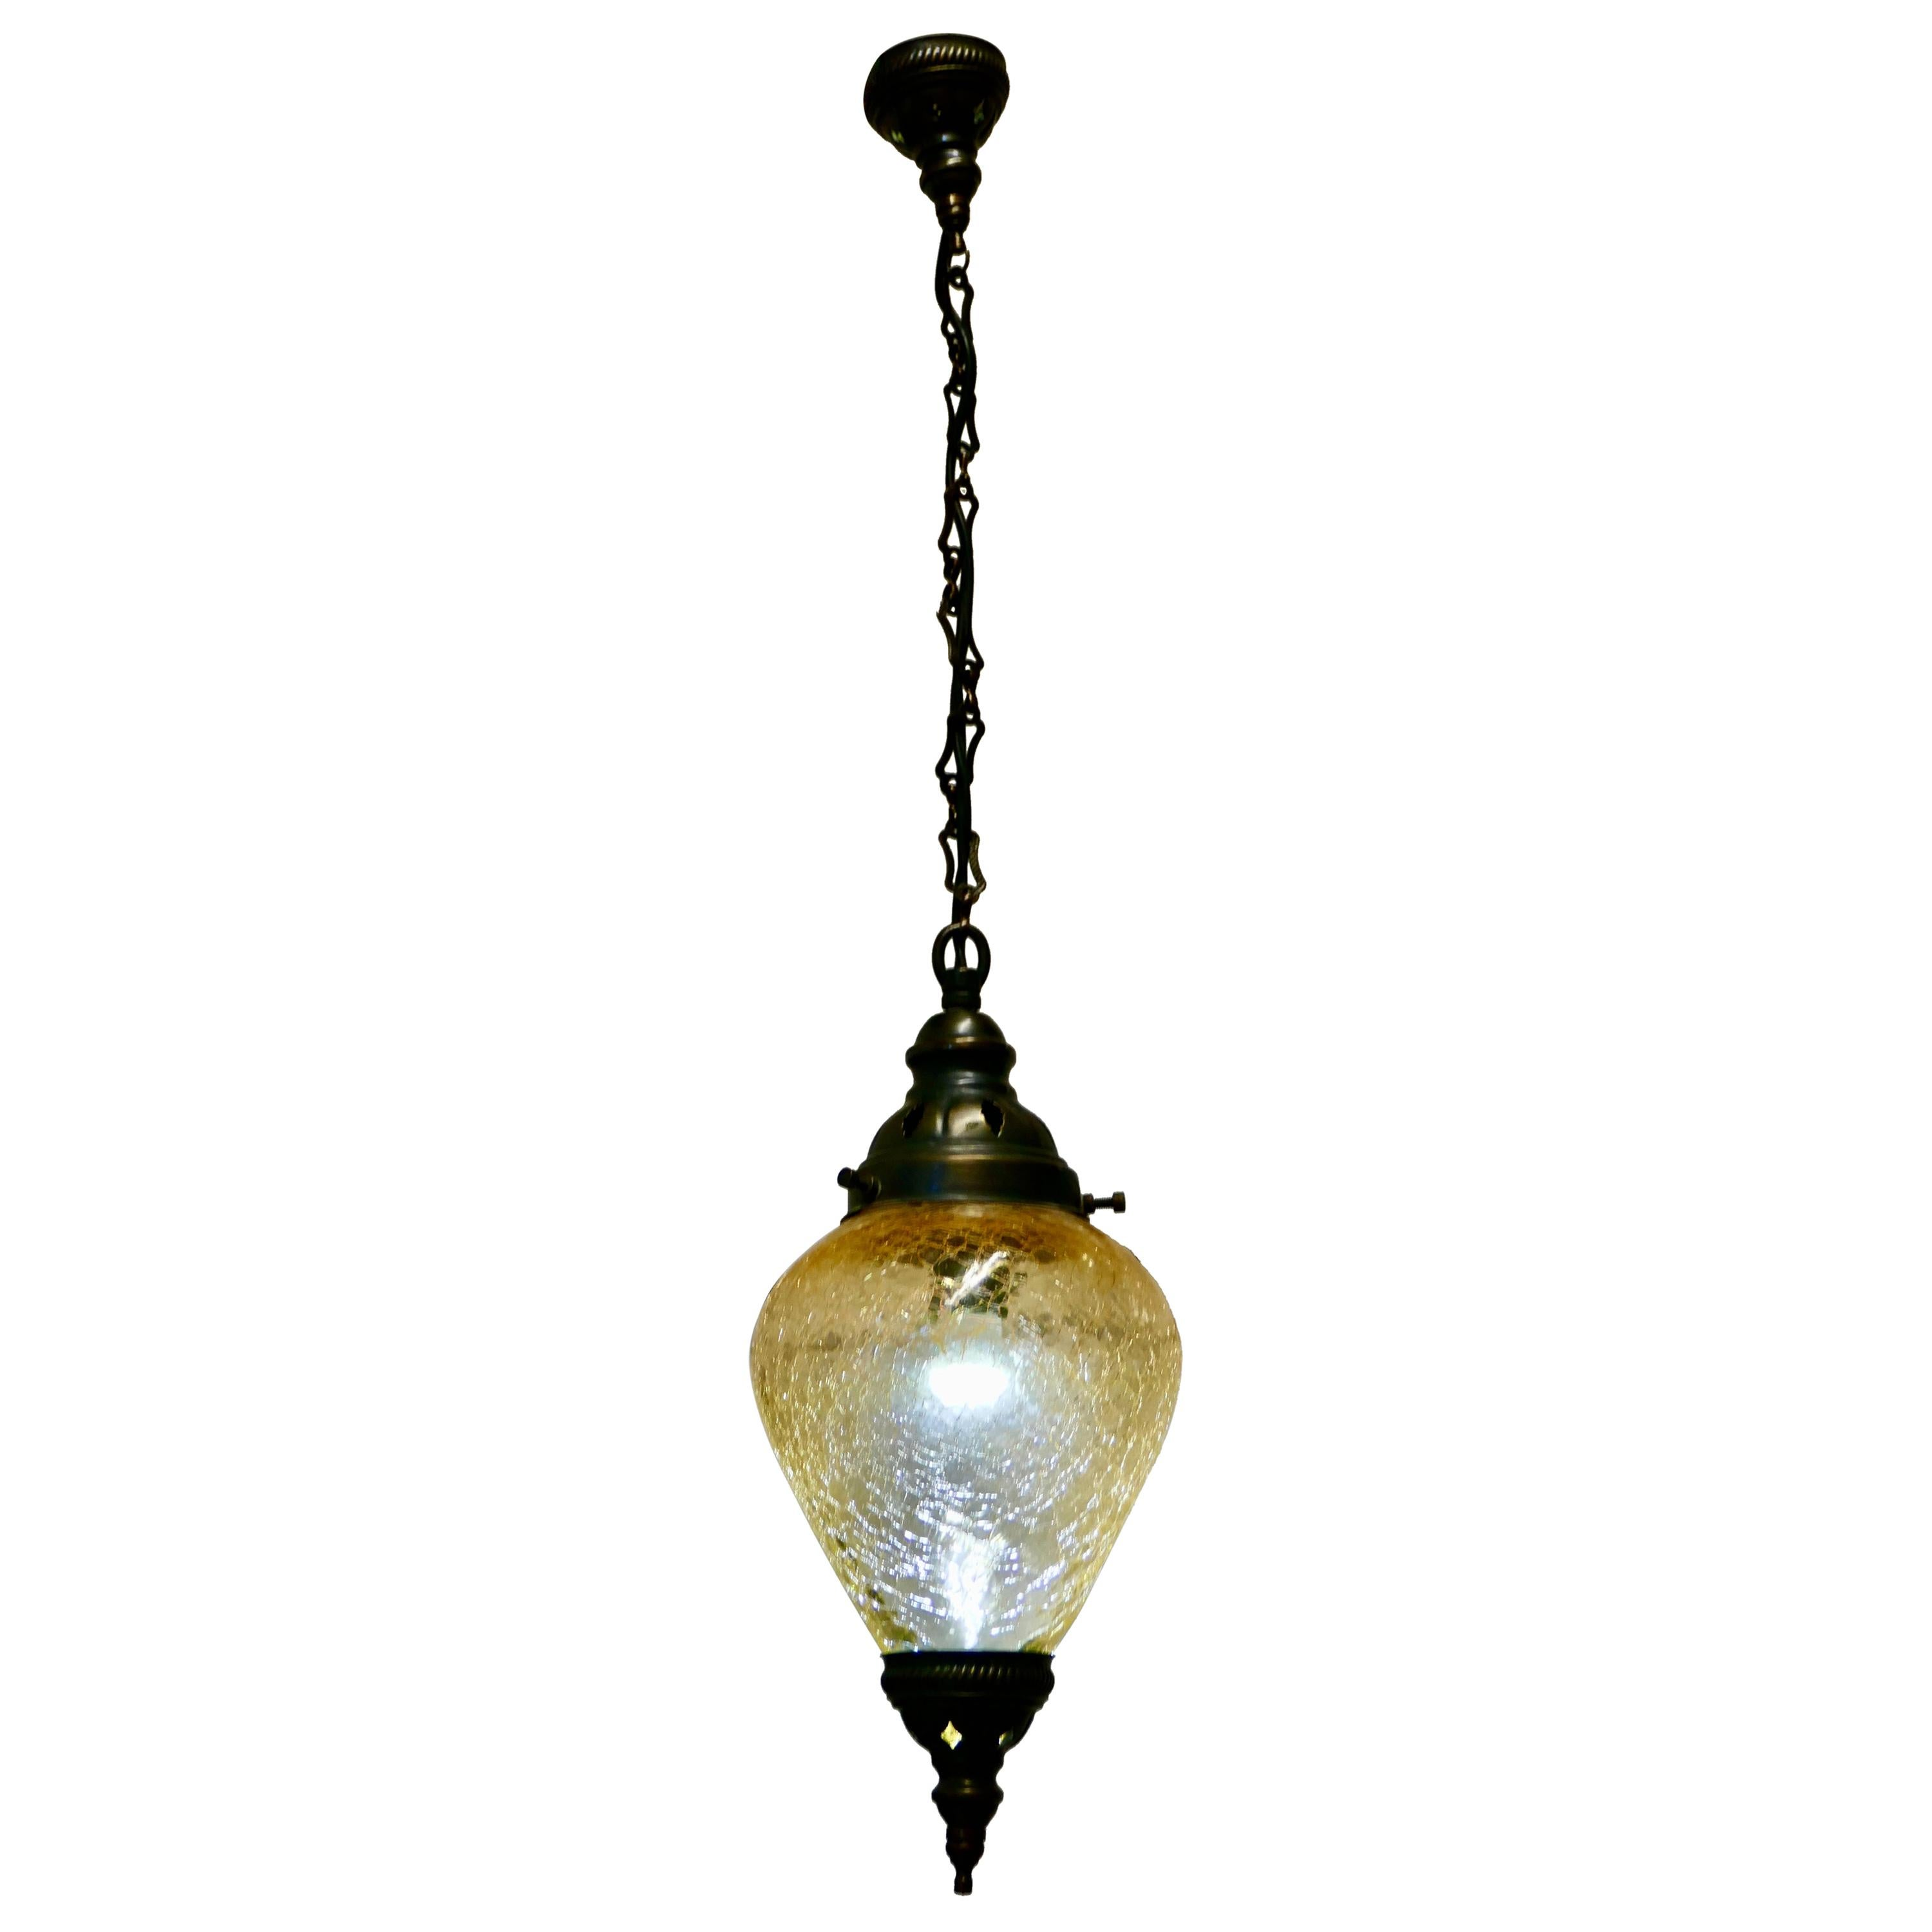 French Art Deco Crackle Glass Hanging Pendant Light